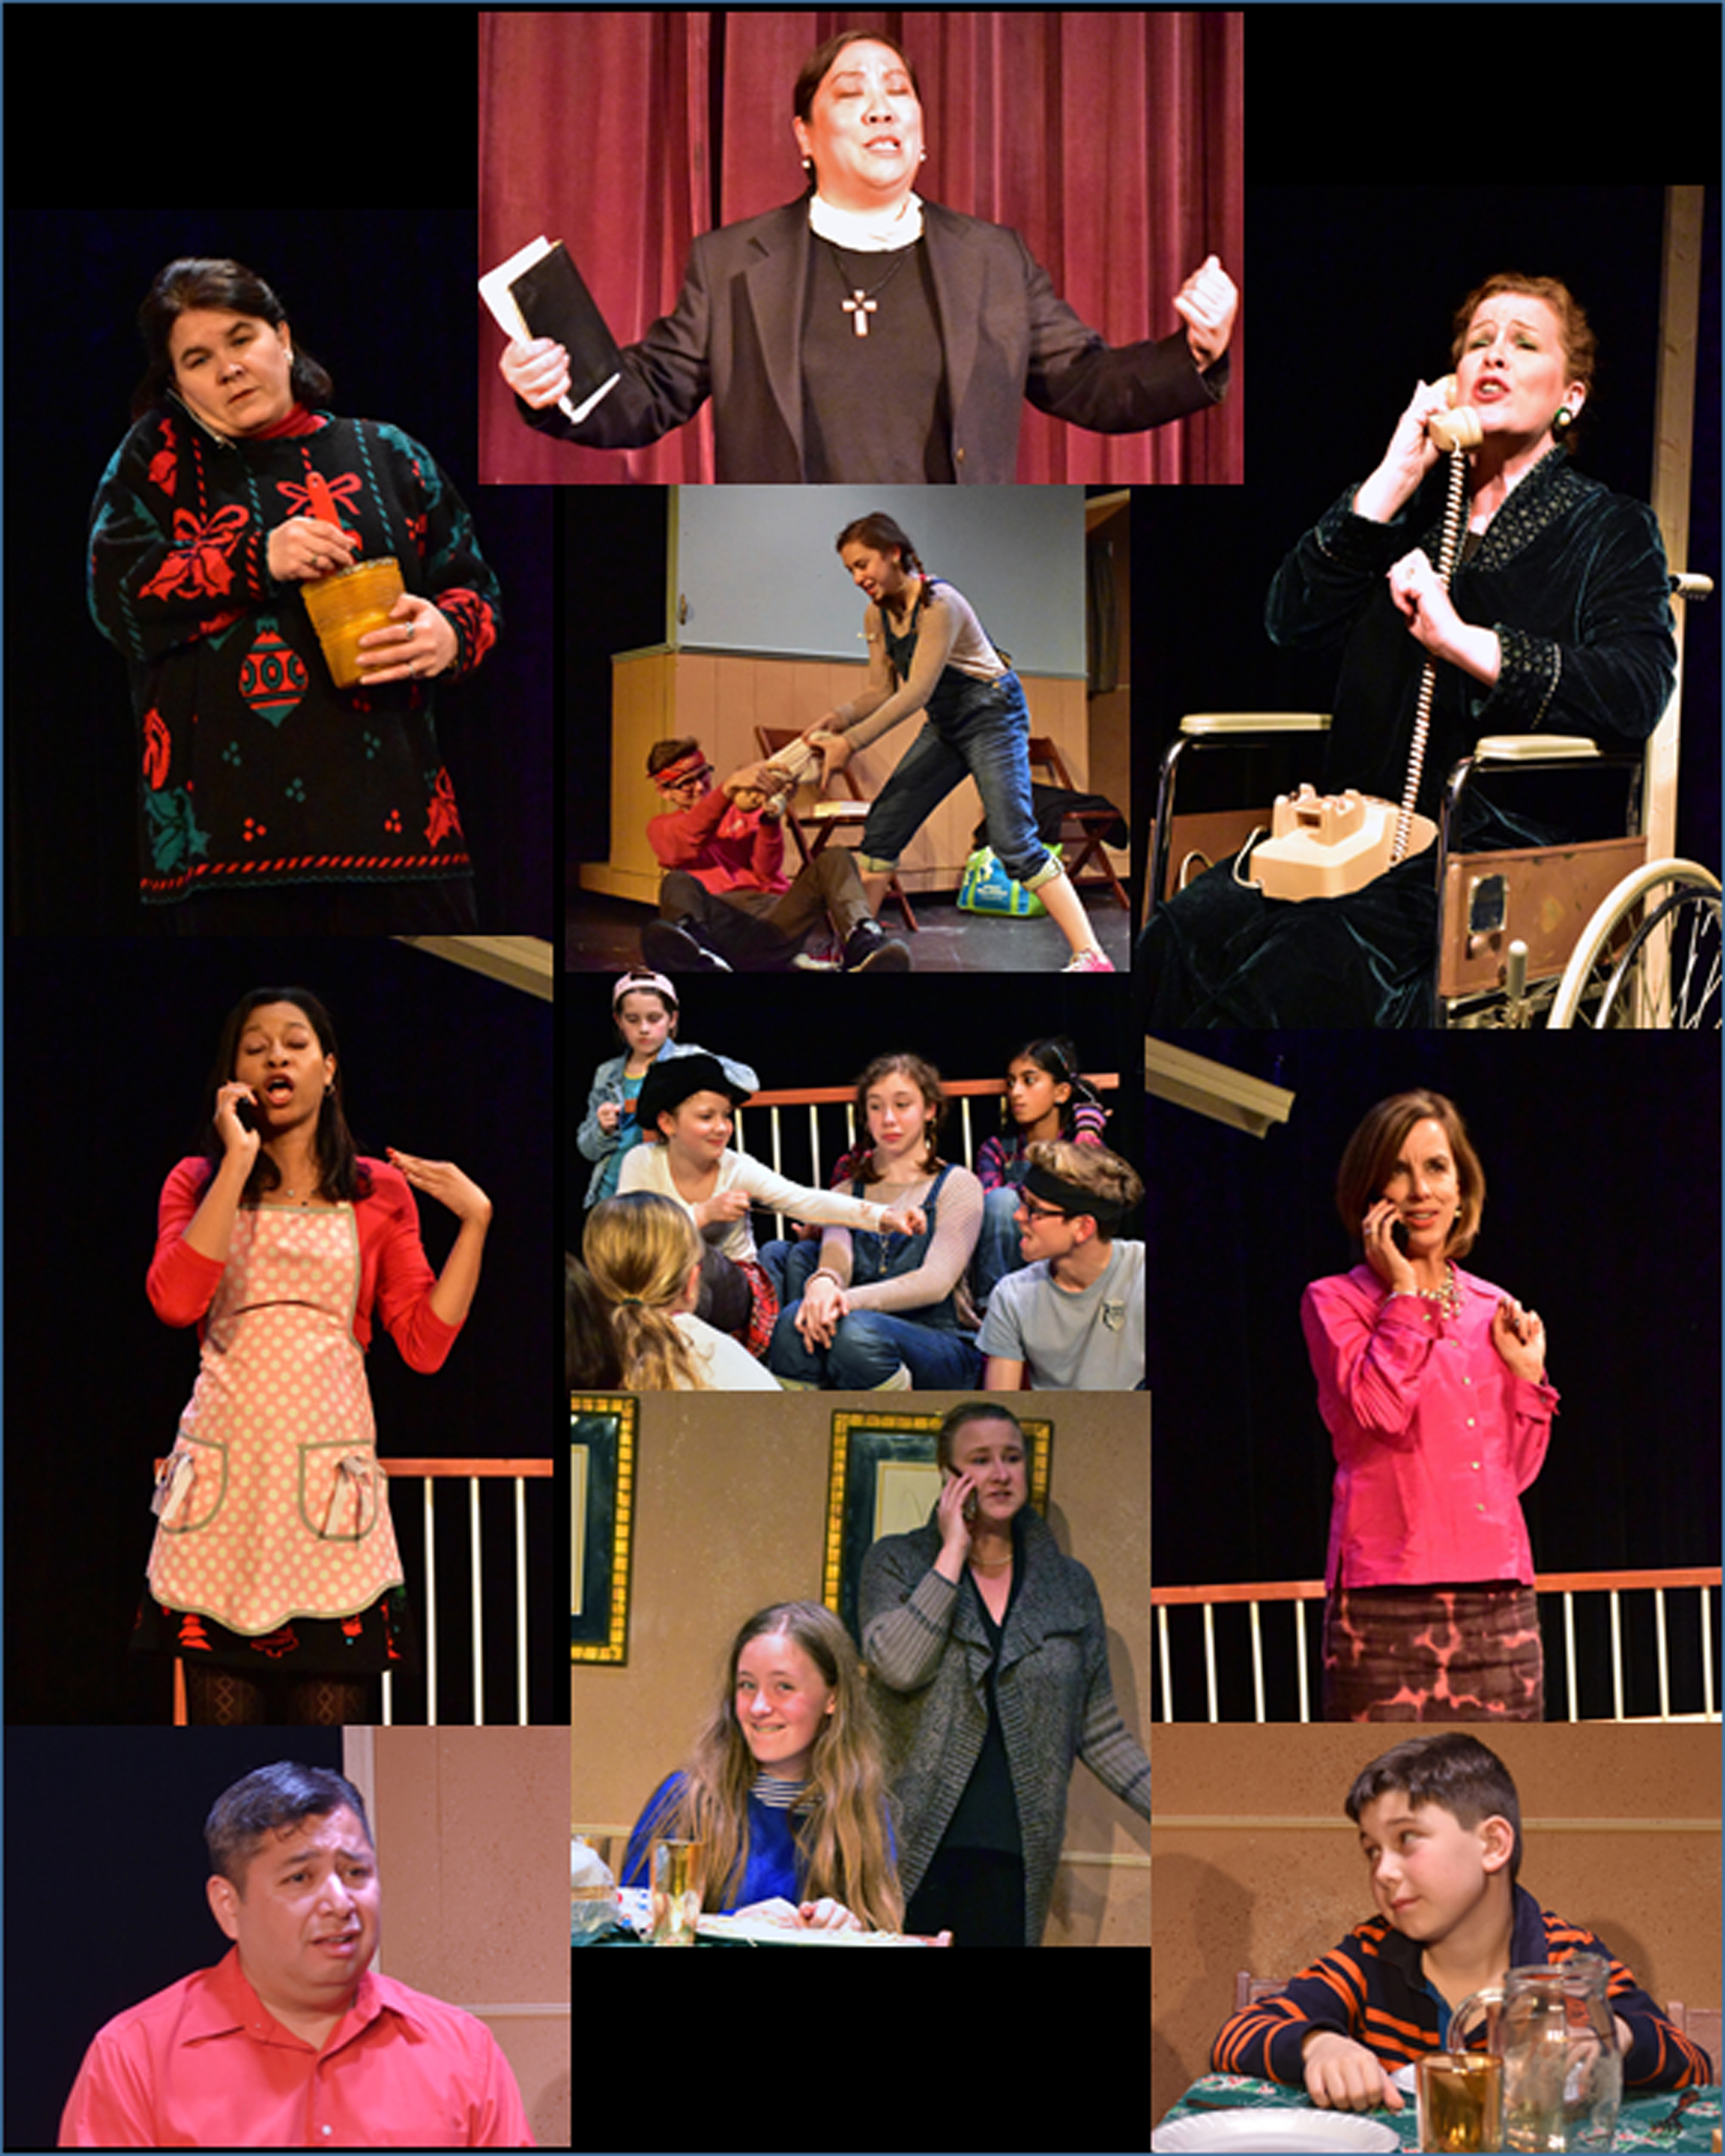 ppf-best-christmas-pageant-ever-the-herdmans-will-ruin-the-pageant-photo-by-chip-gertzog-providence-players